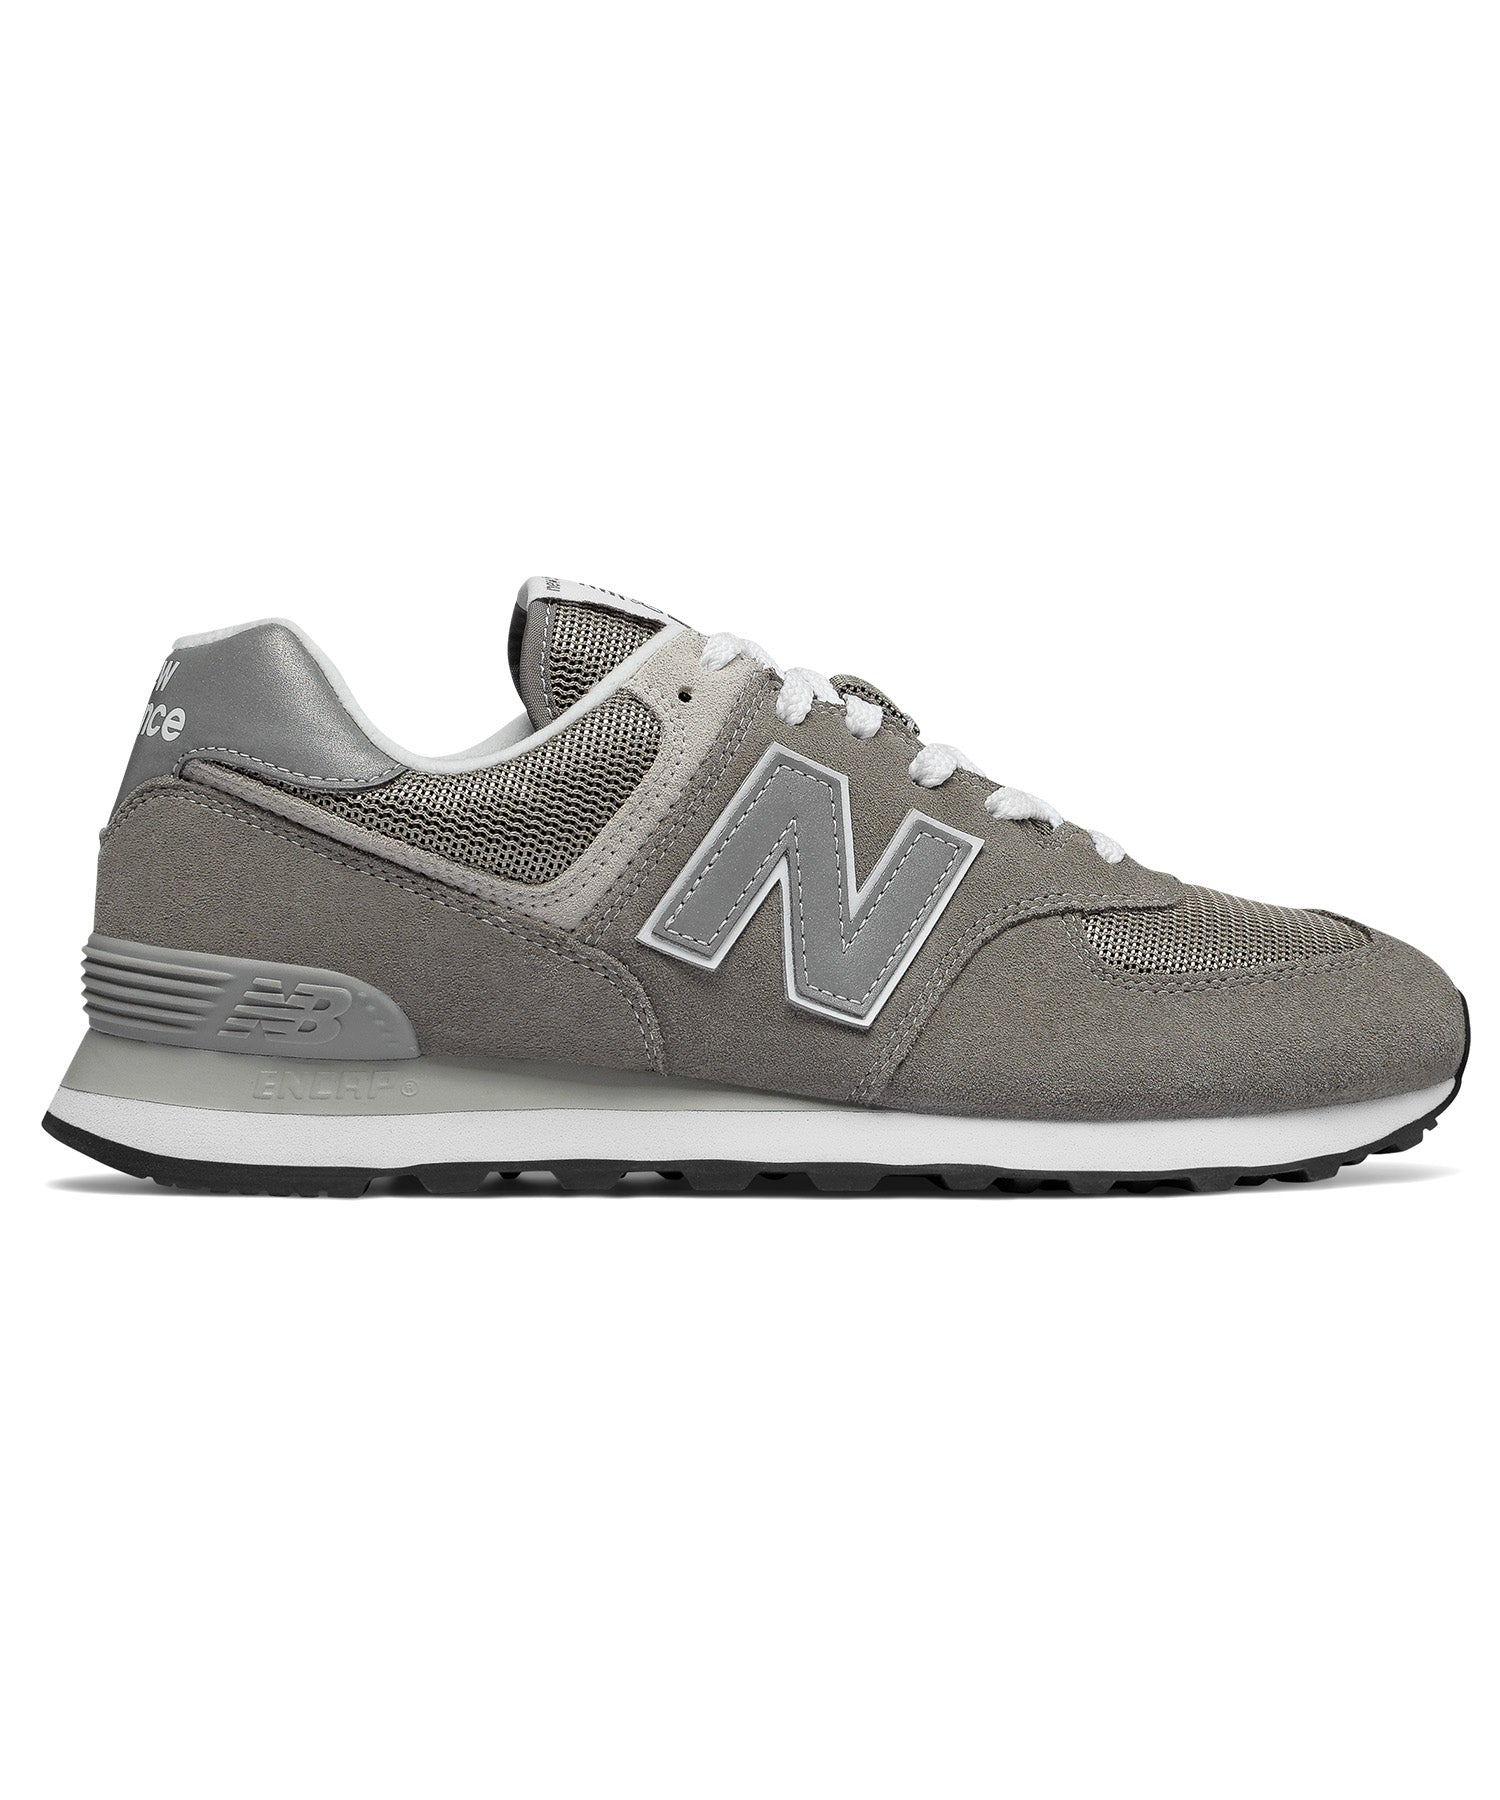 factory price 85f01 19cd6 New Balance - Todd Snyder